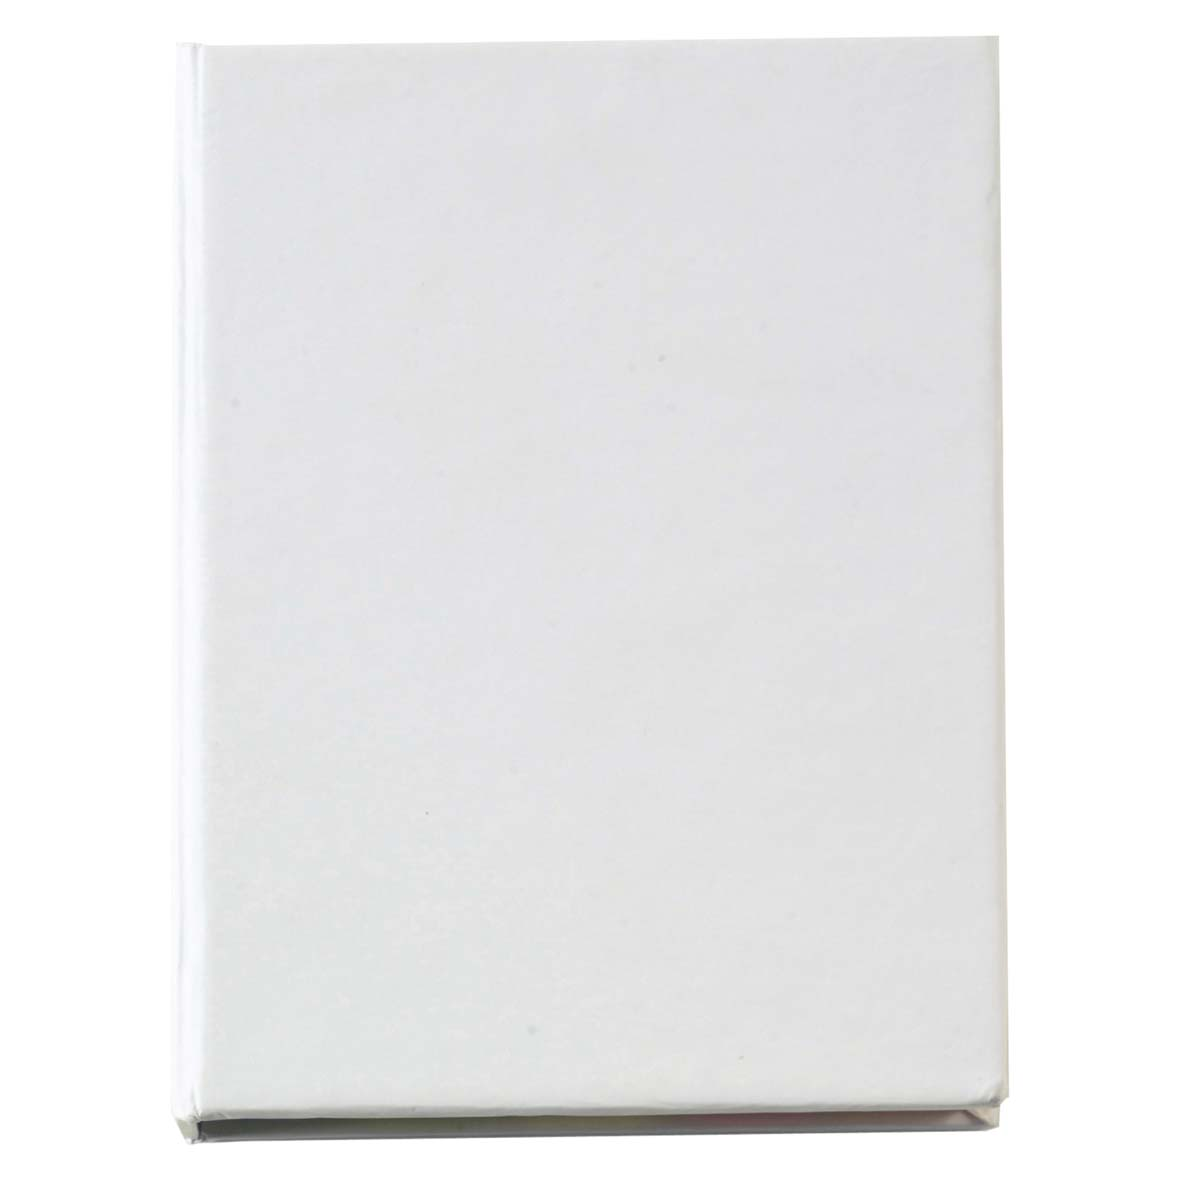 Card case with approximately one hundred self-adhesive markers papers and two self adhesive pads. - White giv-801102